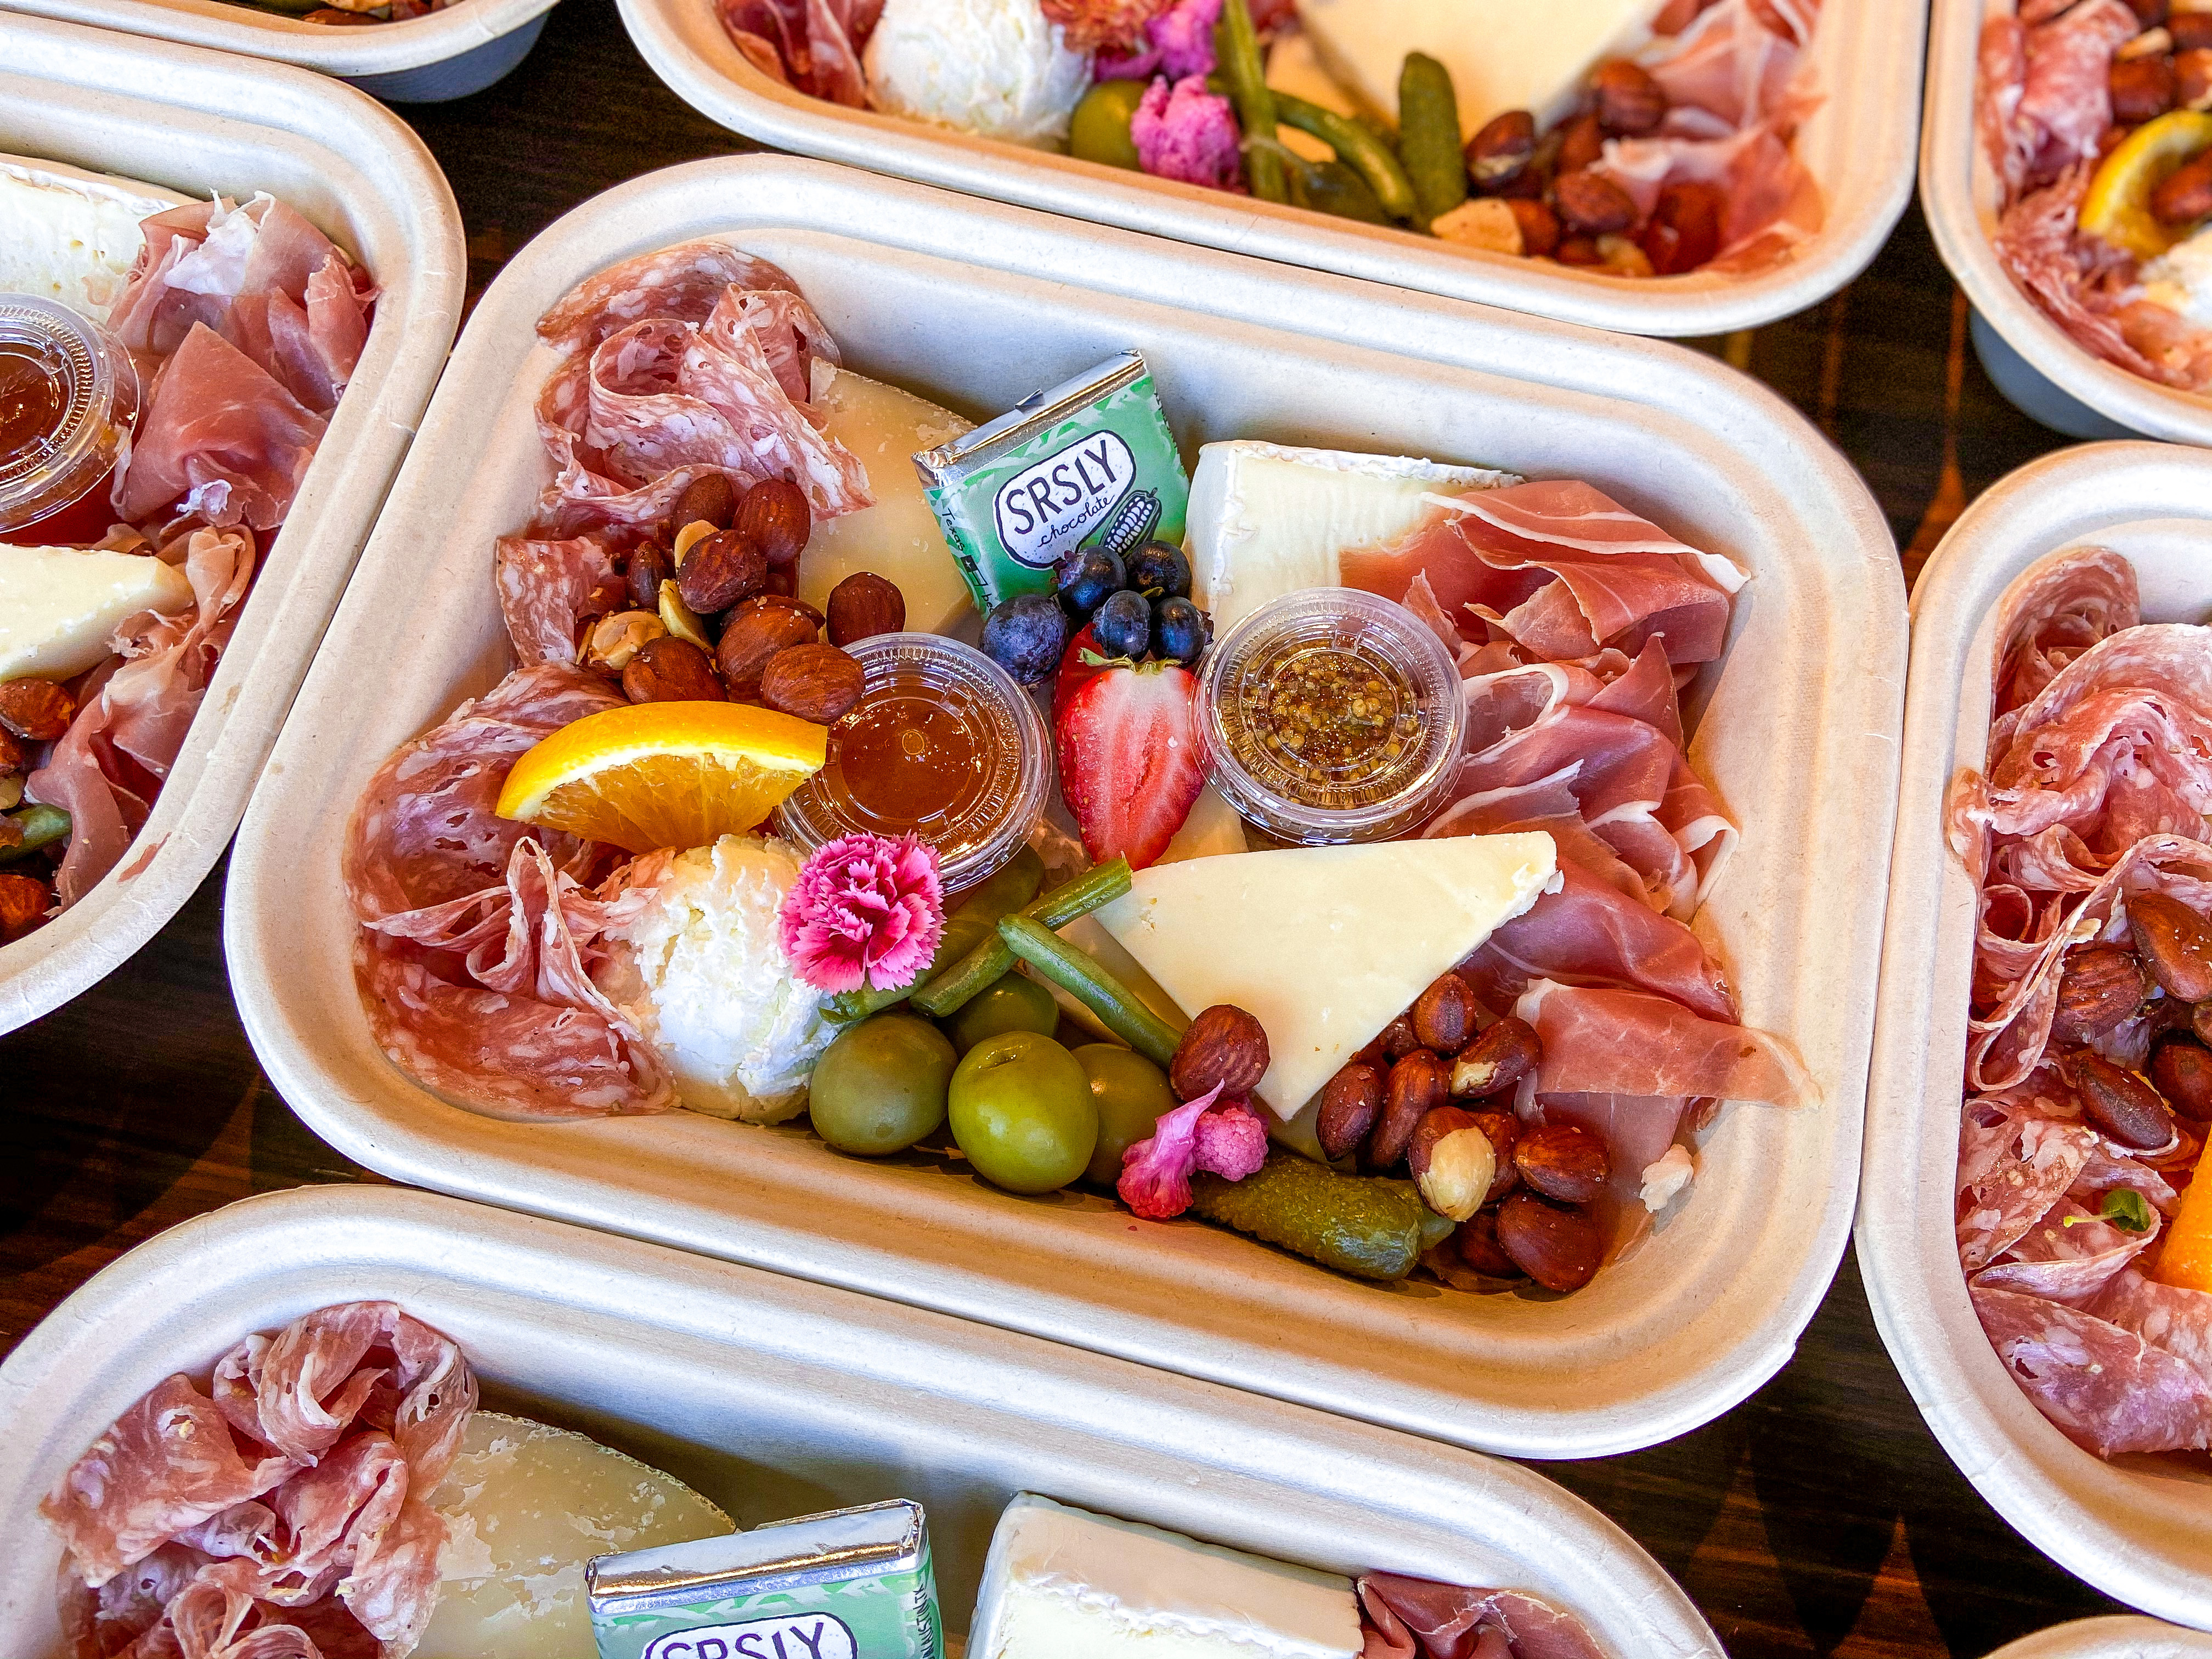 Cheese and charcuterie packs from Spread & Co.